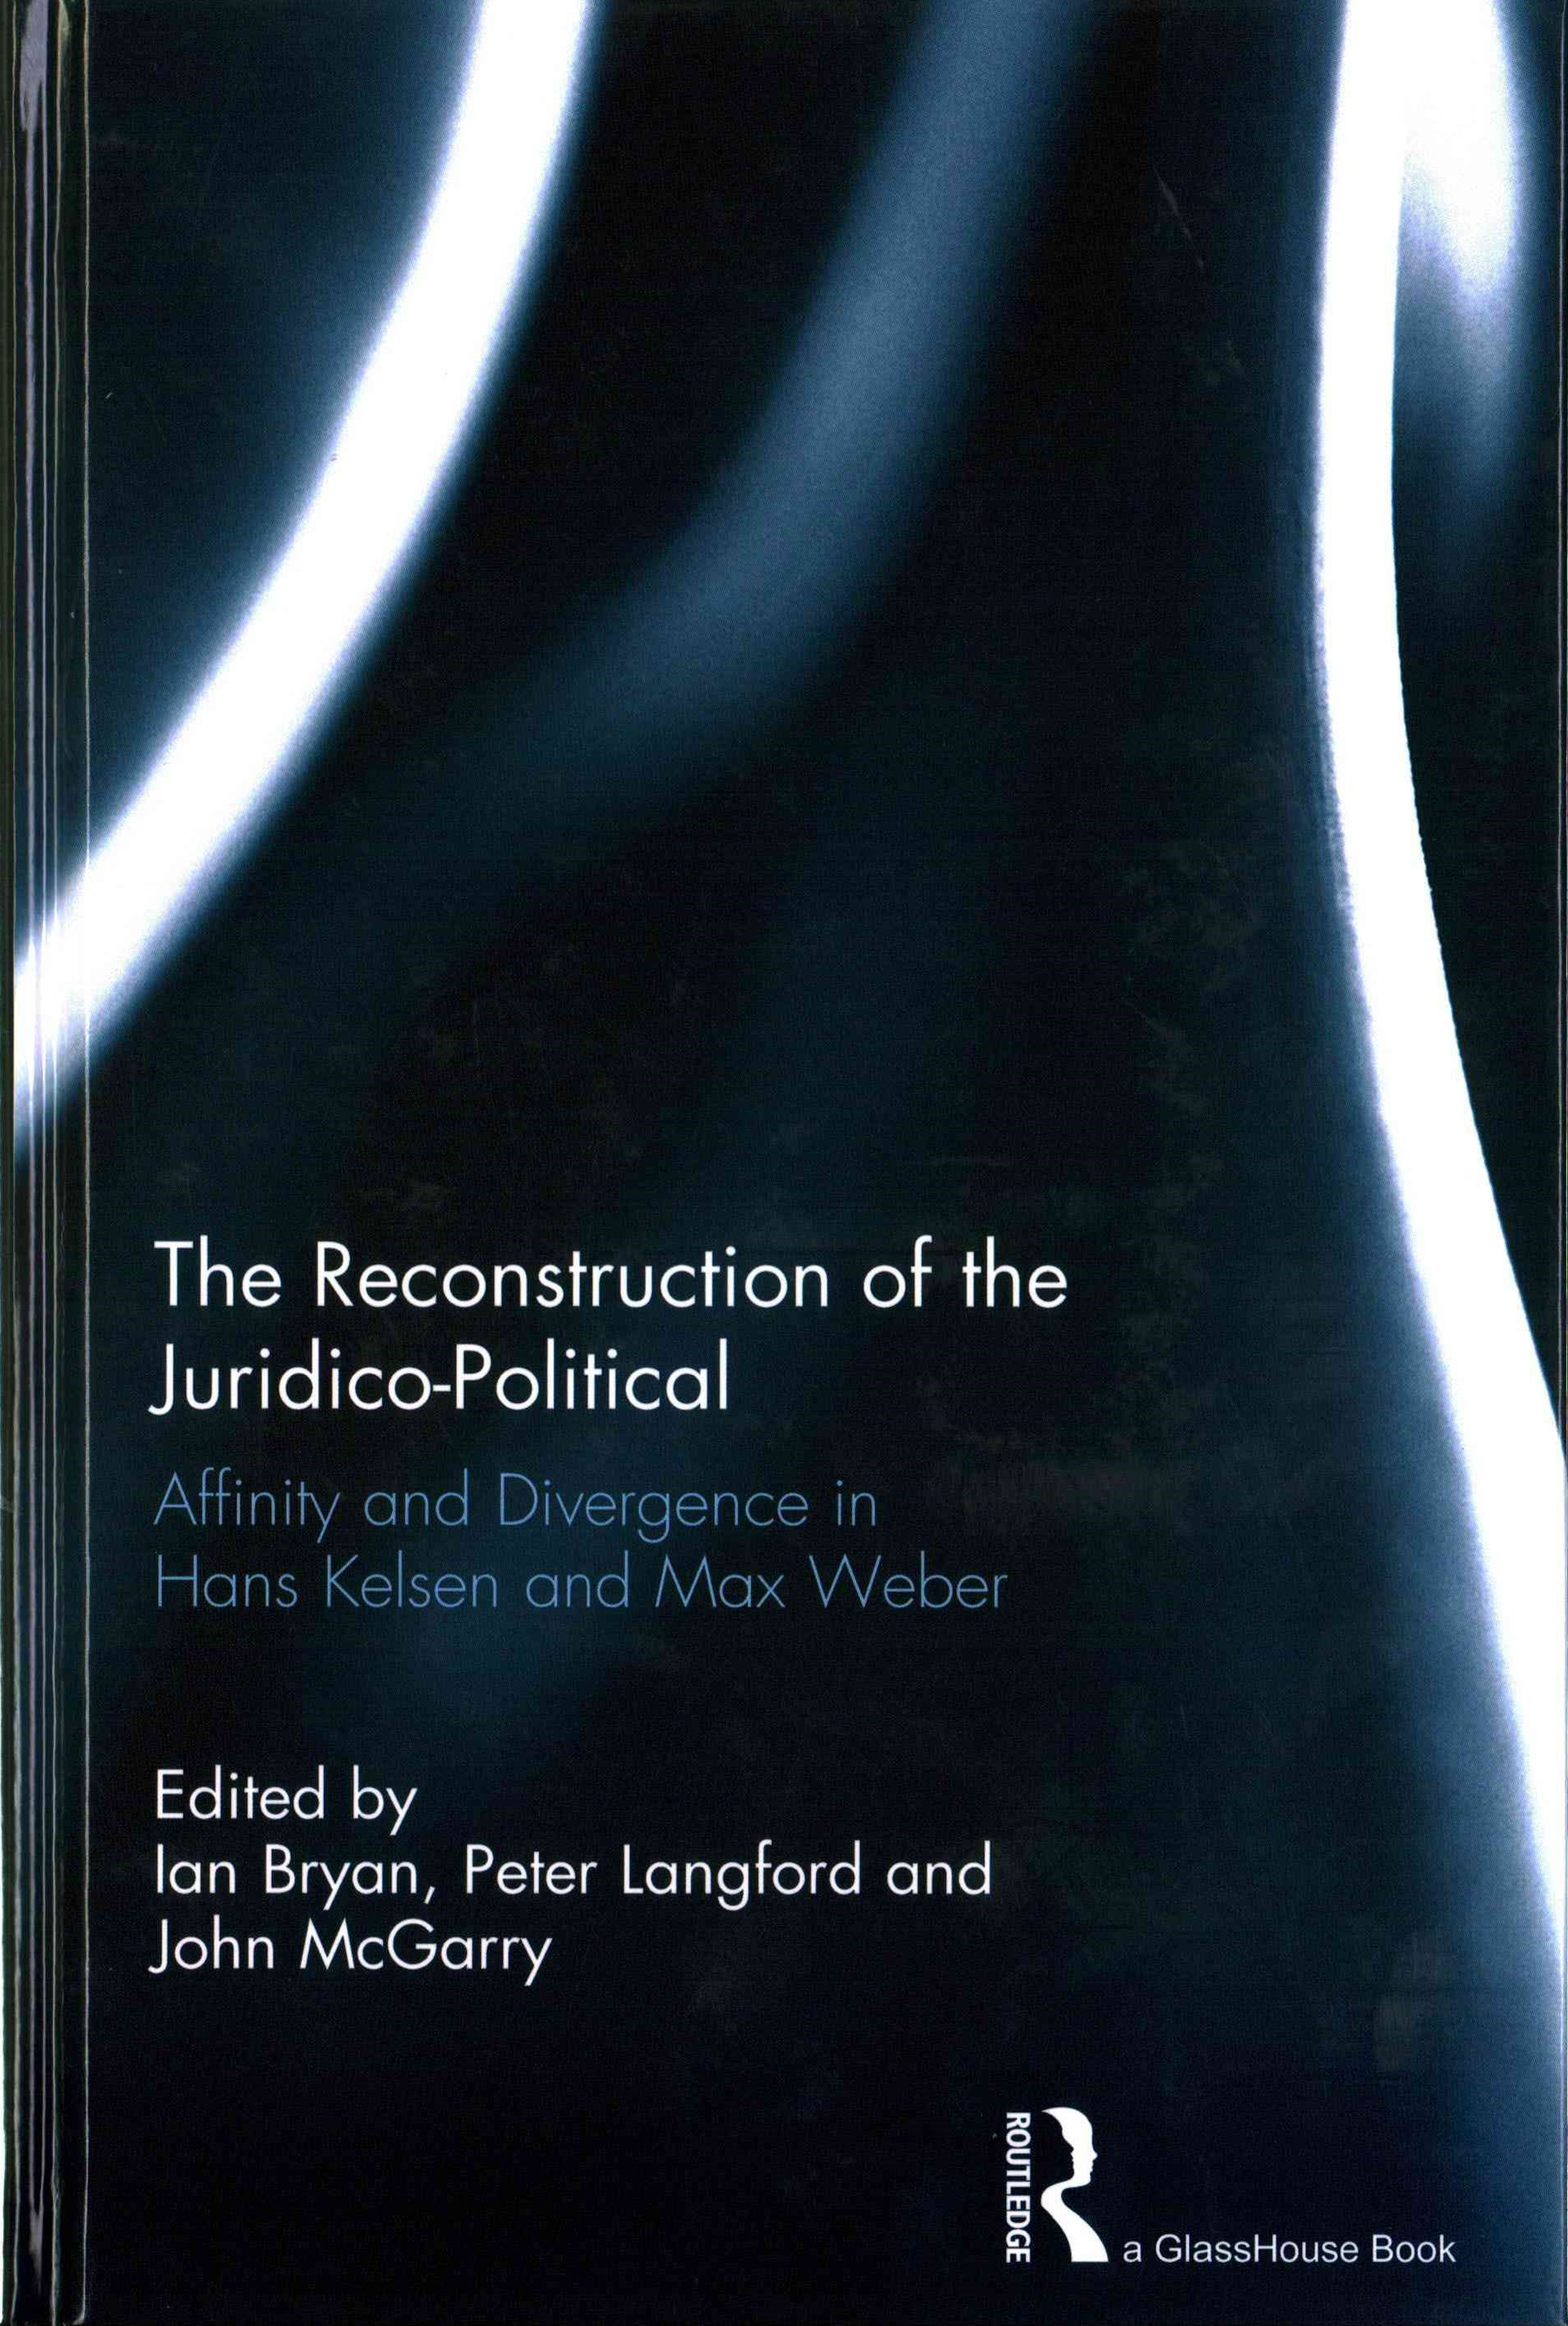 Reconstruction of the Juridico-Political